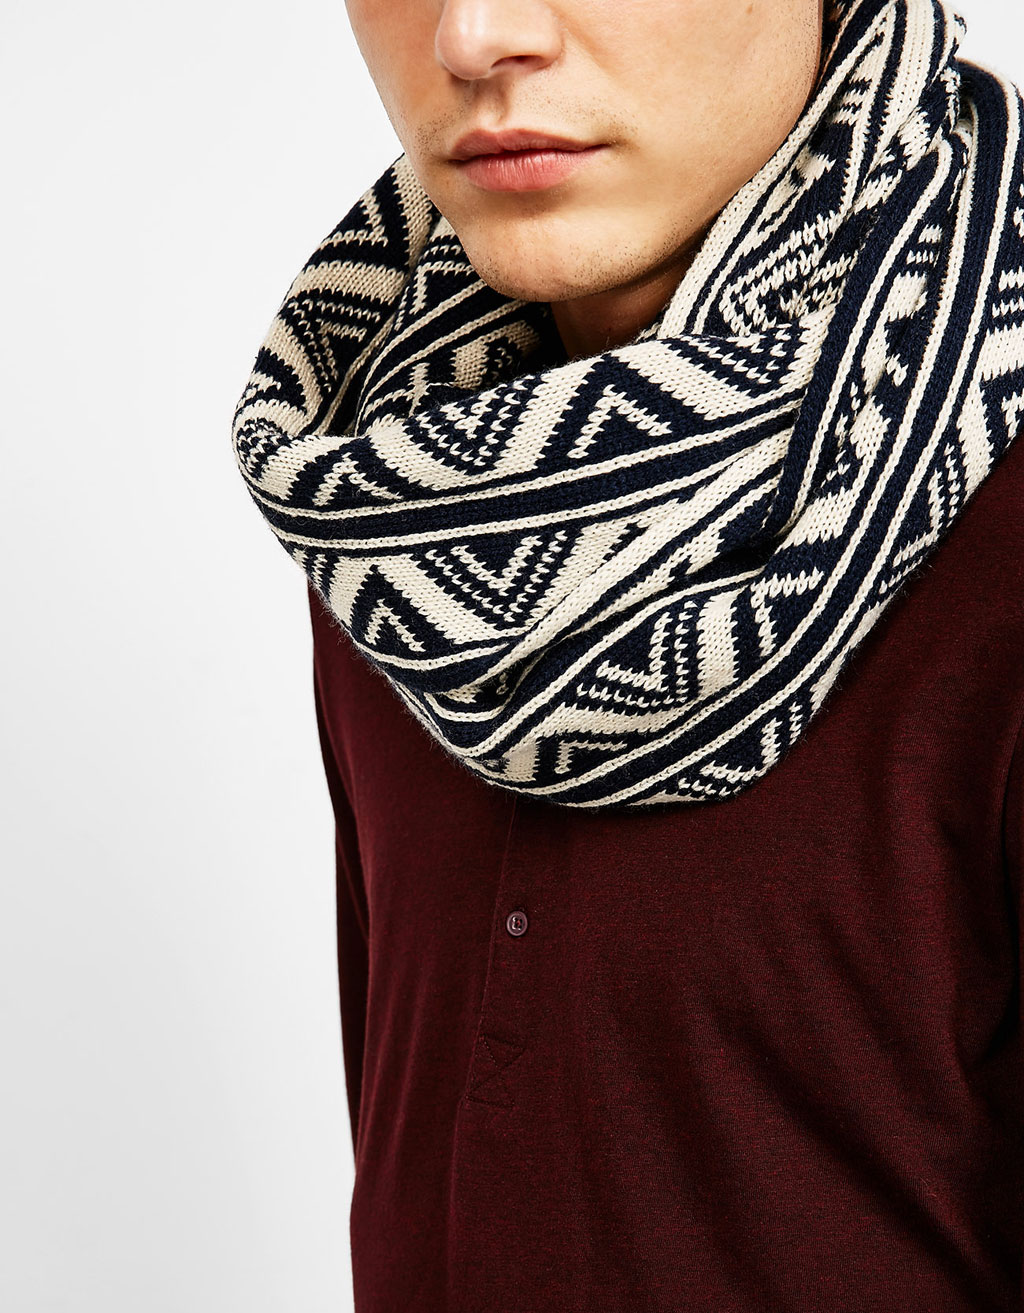 Cuello snood jacquard bicolor